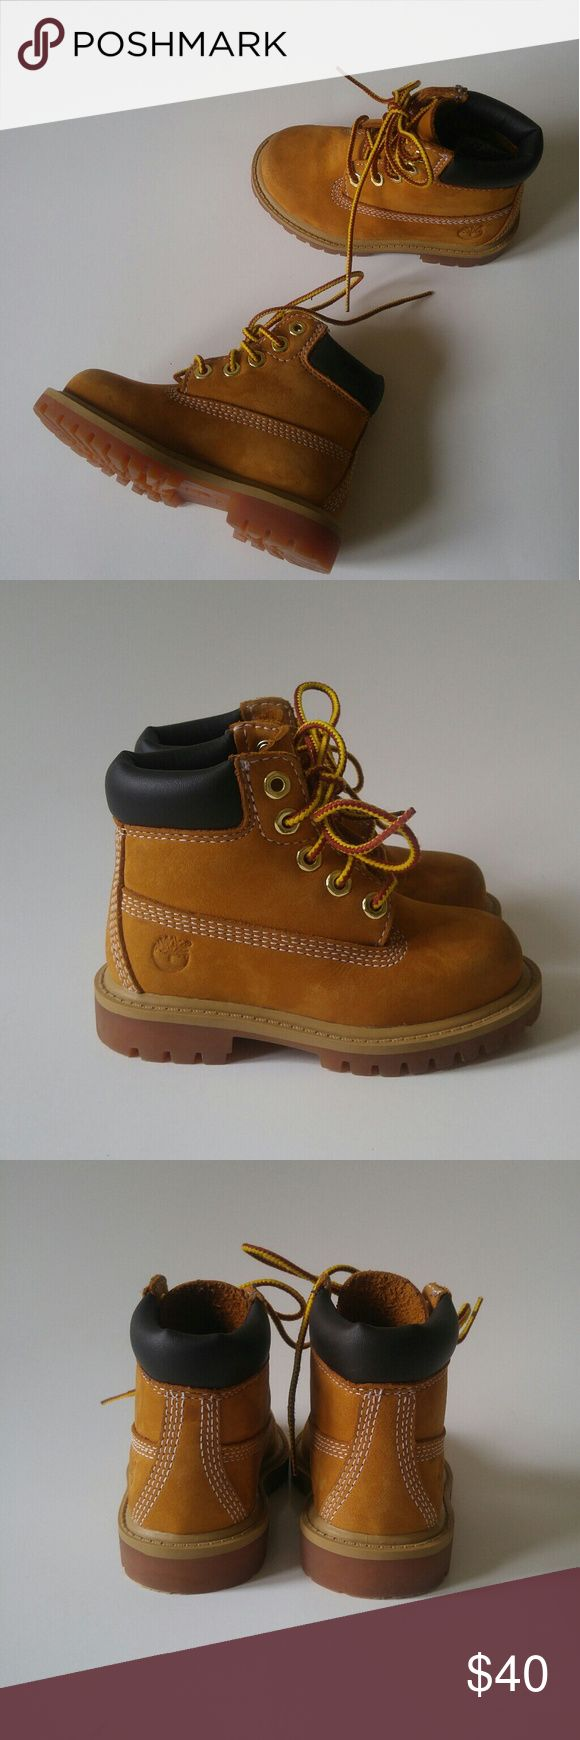 """Timberland 6"""" Premium Waterproof Toddler Boots Timberland kid's boots # 12809 Boy's toddler size 6. Waterproof leather upper with a padded collar for comfort.  Rubber sole with lugged traction pattern.  Overall good condition- some wear at toes, inner side of left shoe, bottom and inner sole are barely worn. See all photos for condition!  *I offer 10% off bundles of 2+ items!* Timberland Shoes Boots"""